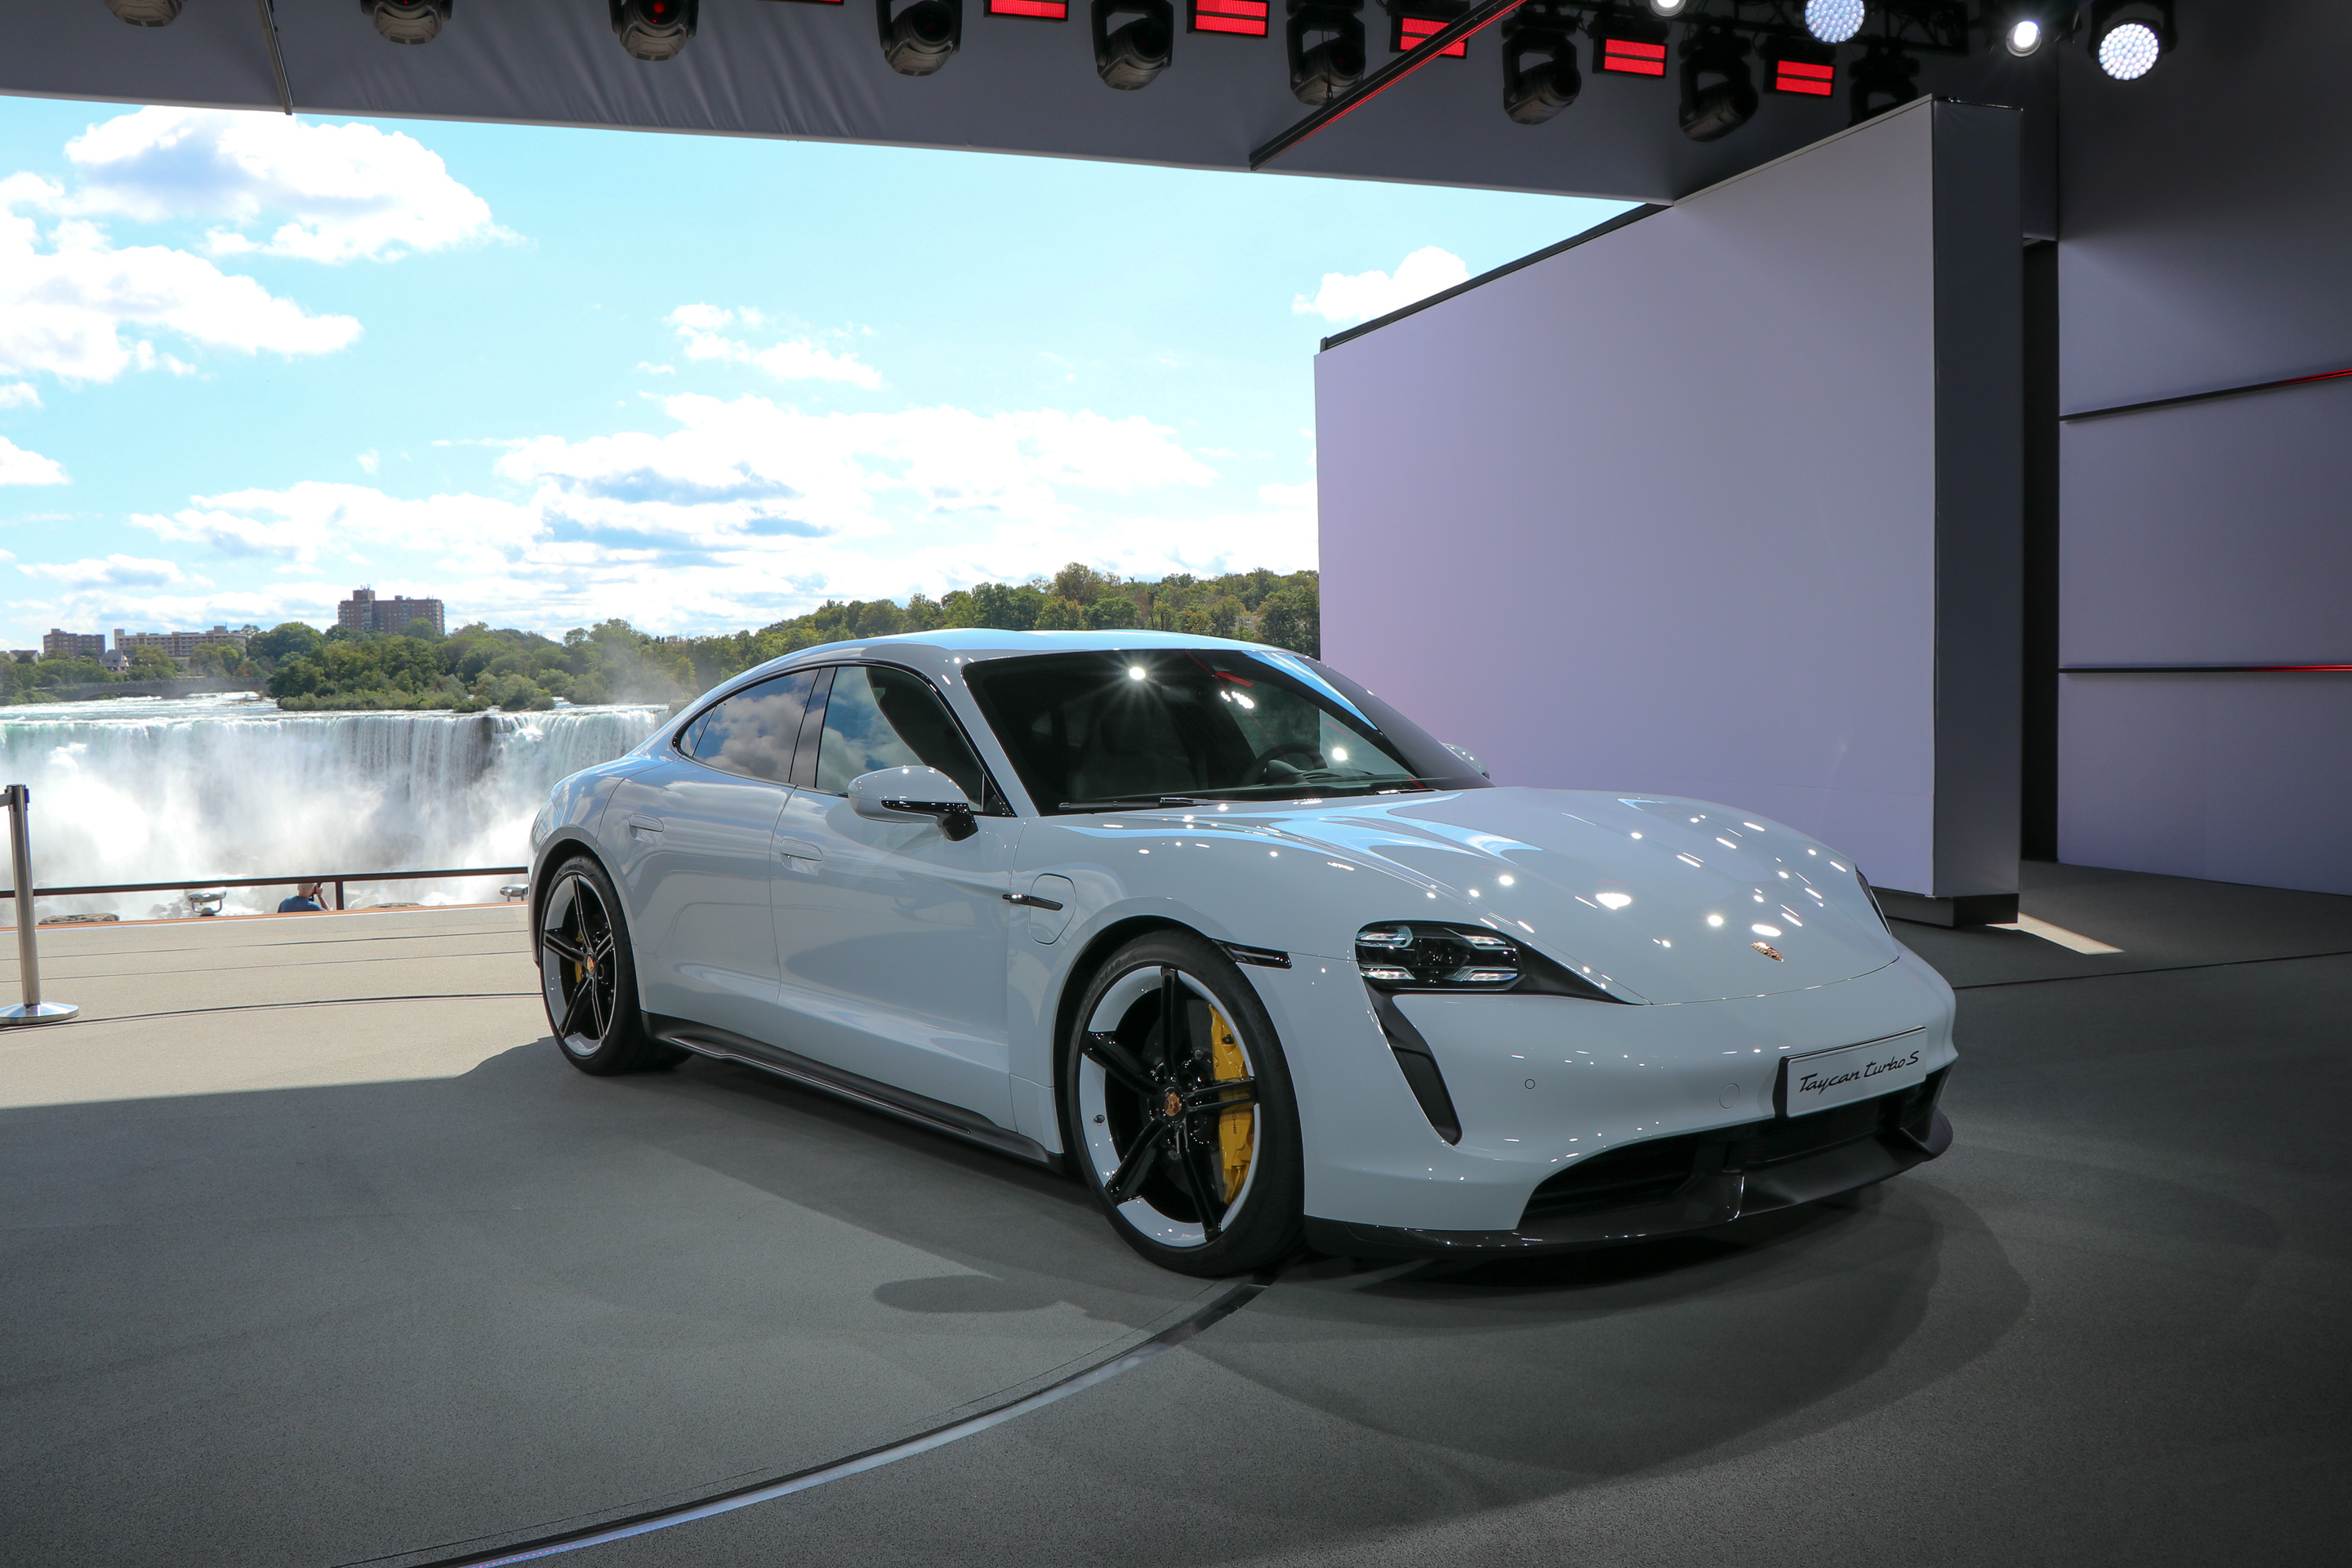 World Premiere of all-electric Porsche Taycan with Niagra Falls as the backdrop